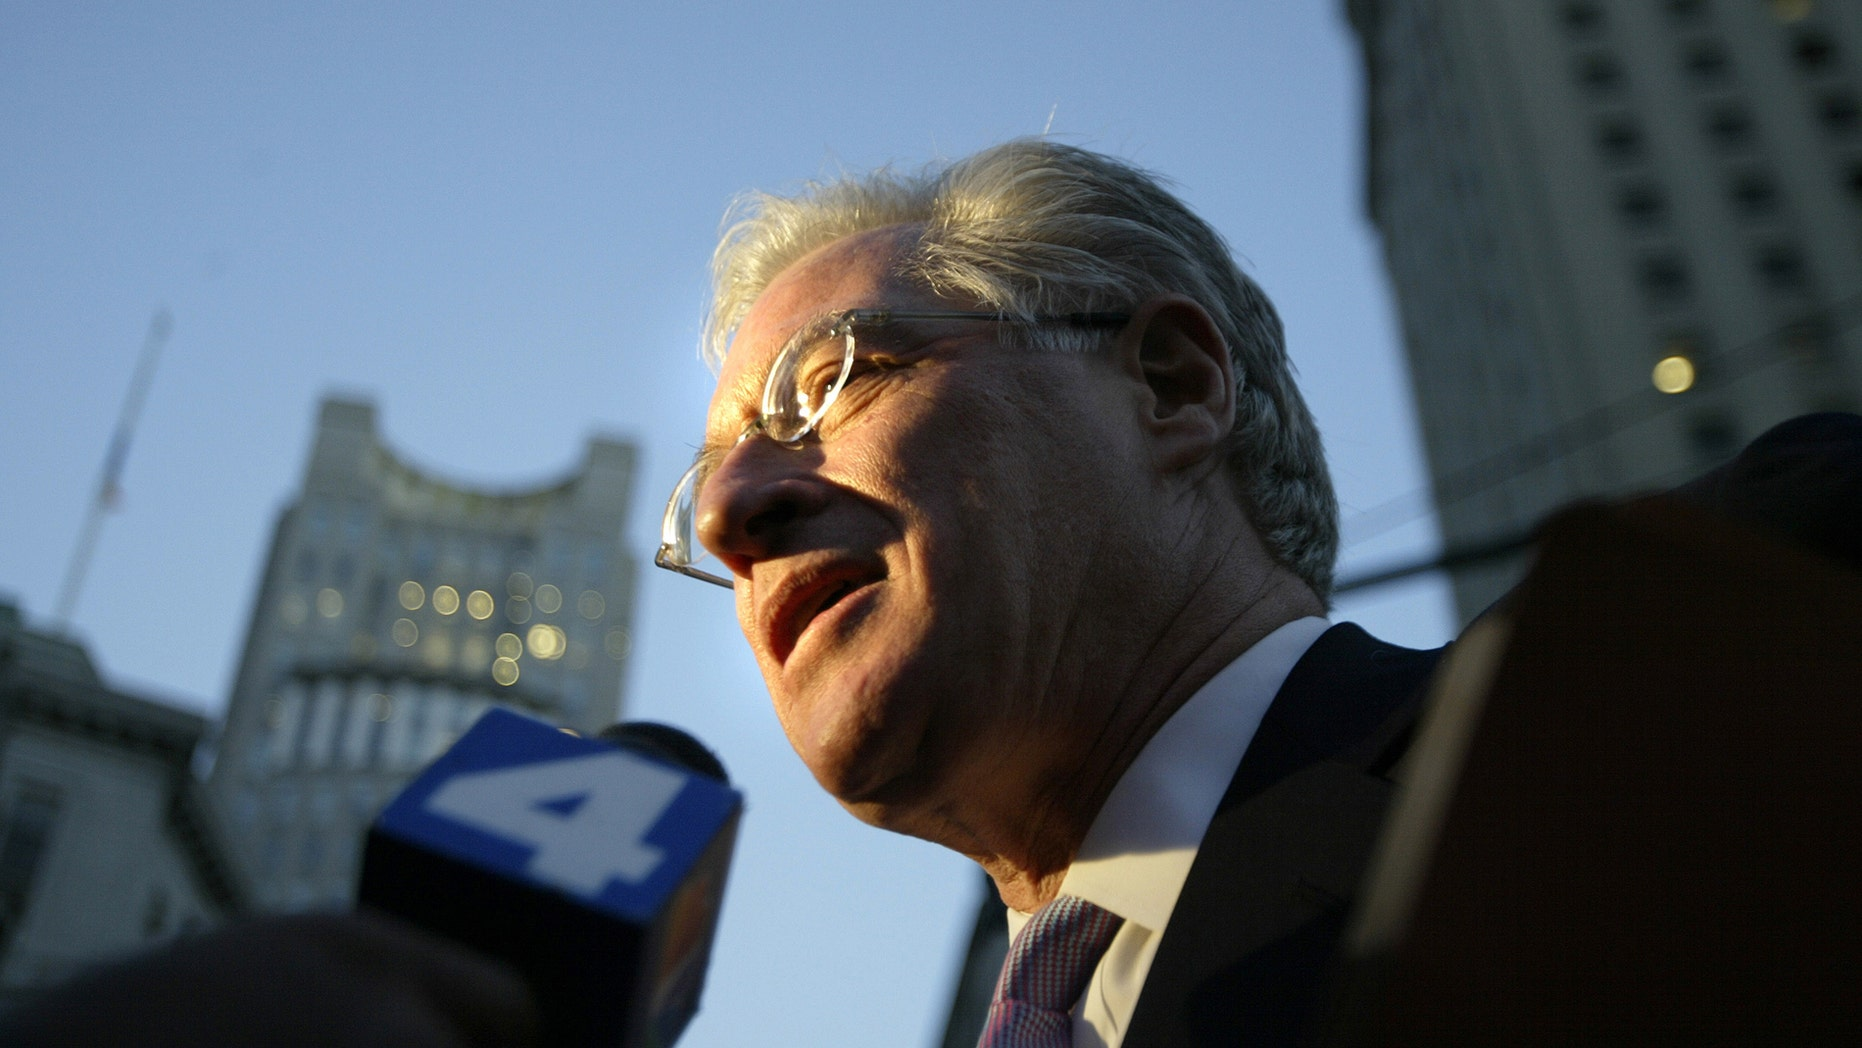 Attorney Marc Kasowitz in New York on October 26, 2005, when he represented the New York/New Jersey Port Authority in the World Trade Center bombing case.